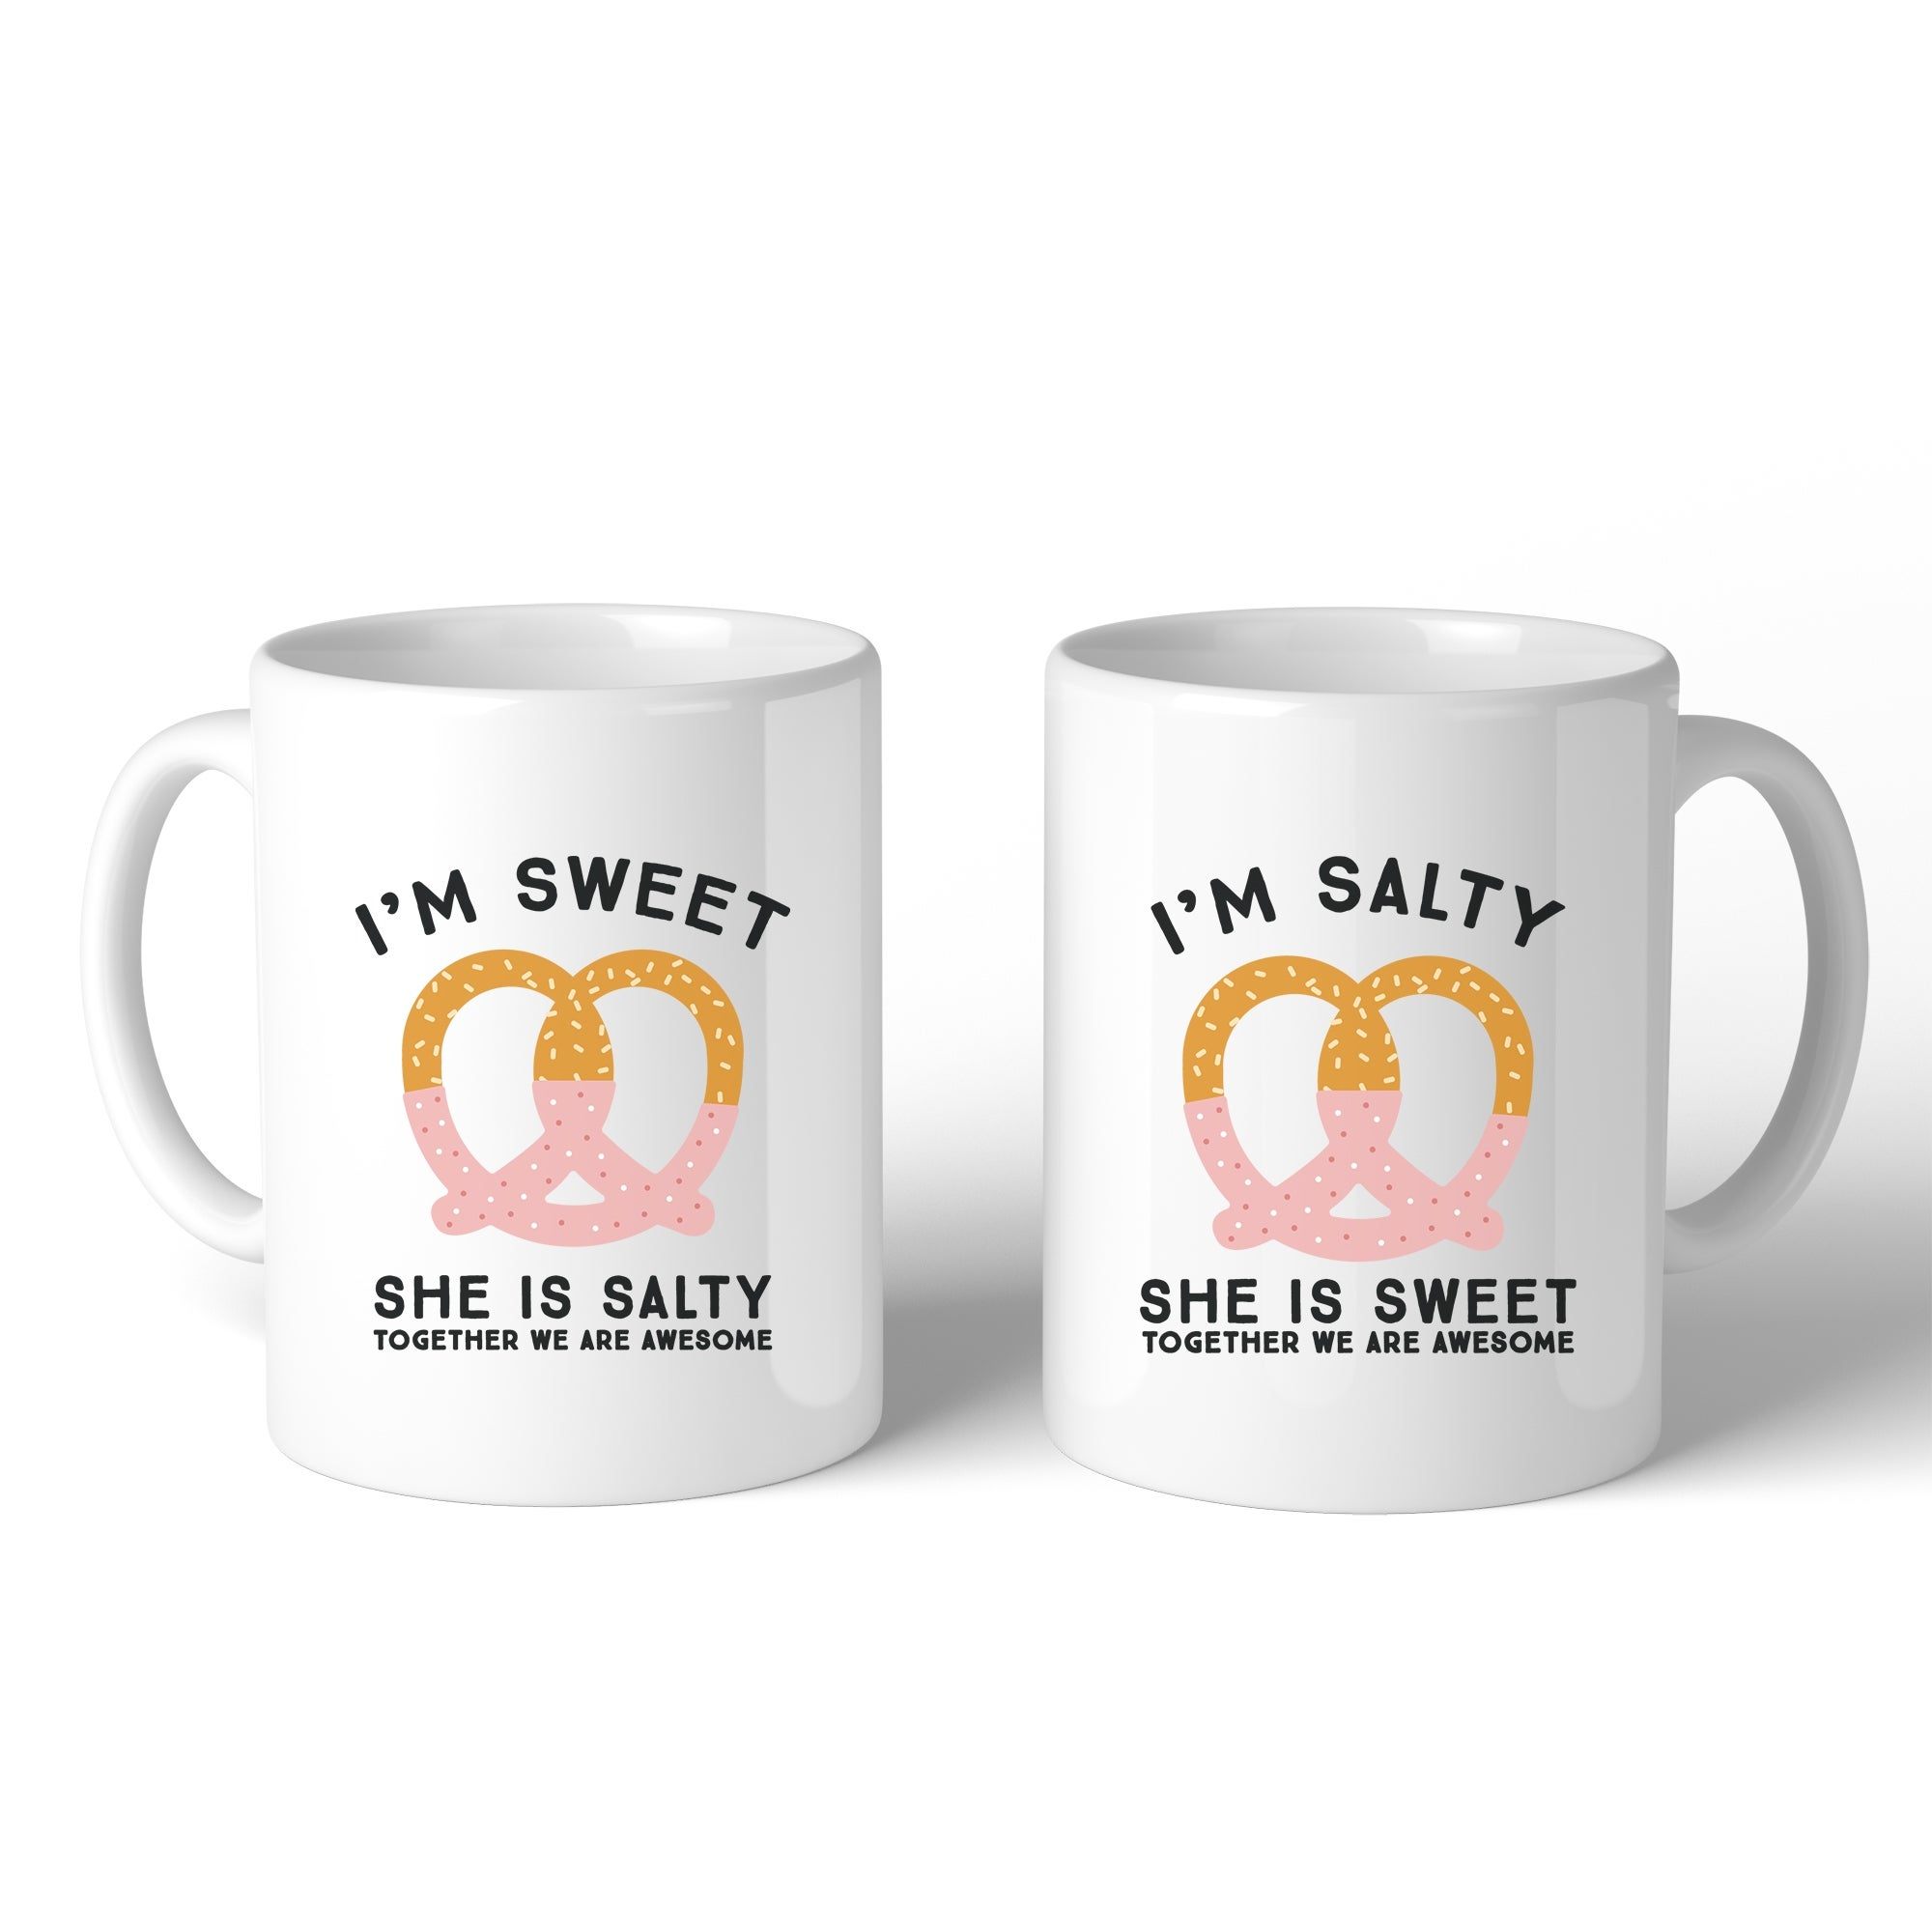 Sweet And Salty Cute Graphic Ceramic Mugs 11oz Funny Friends Gifts Overstock 16852032